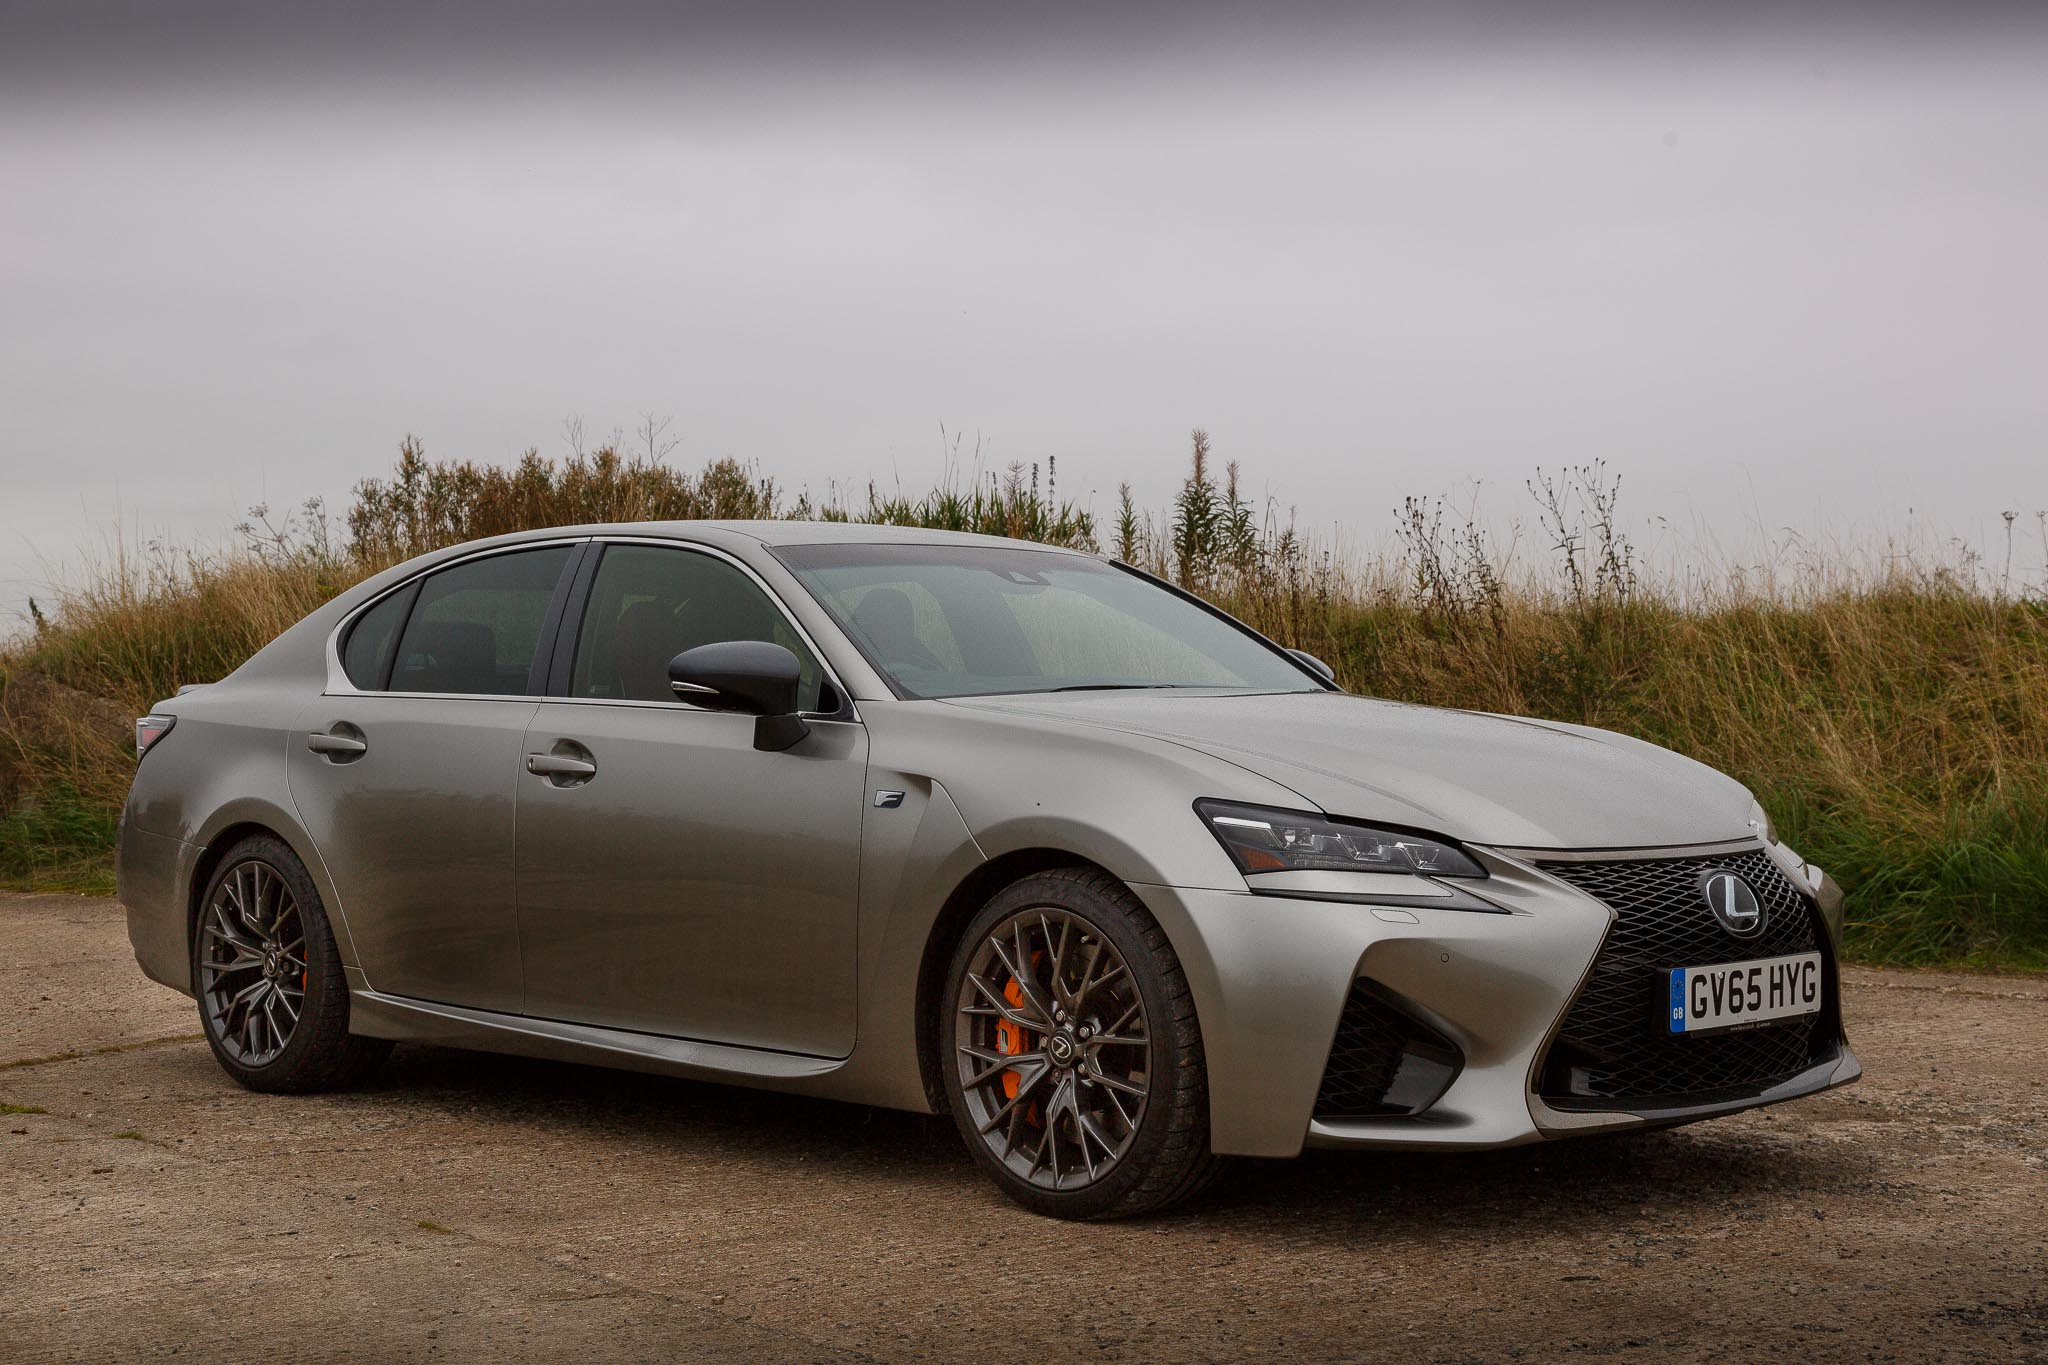 Perfect 2016 Lexus GS F Review